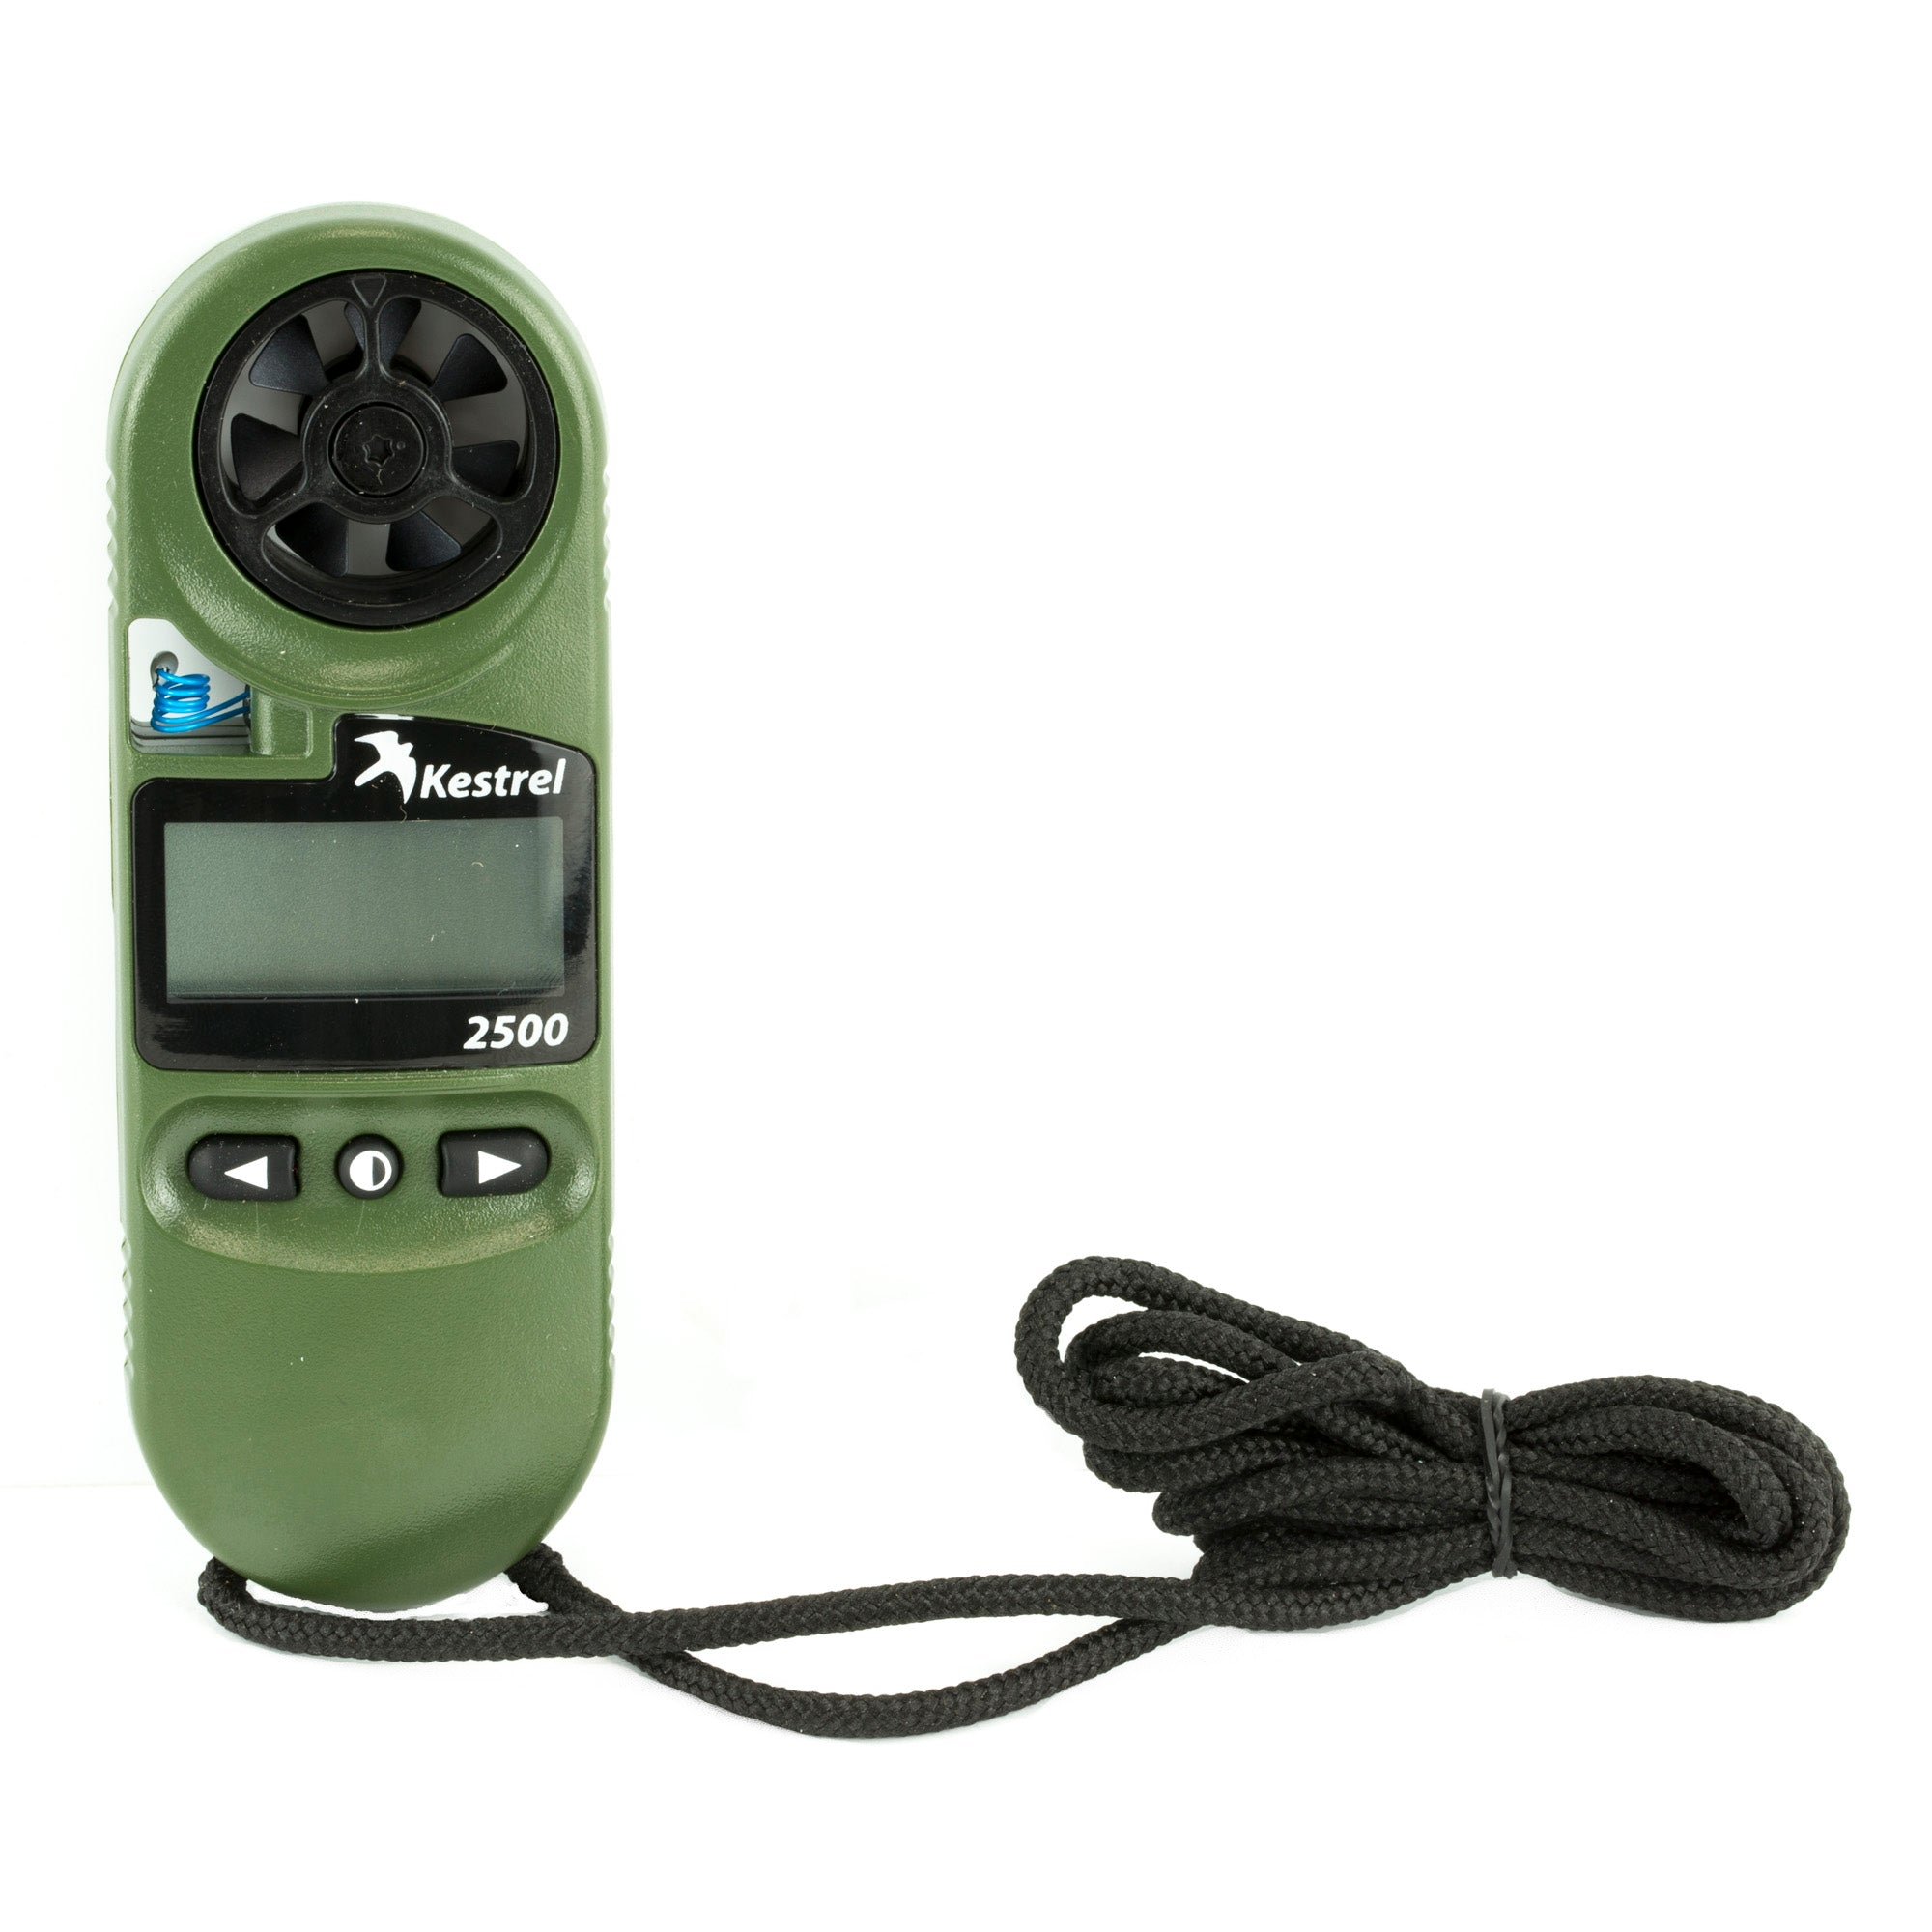 Kestrel 2500NV Electronic Hand Held Weather Meter